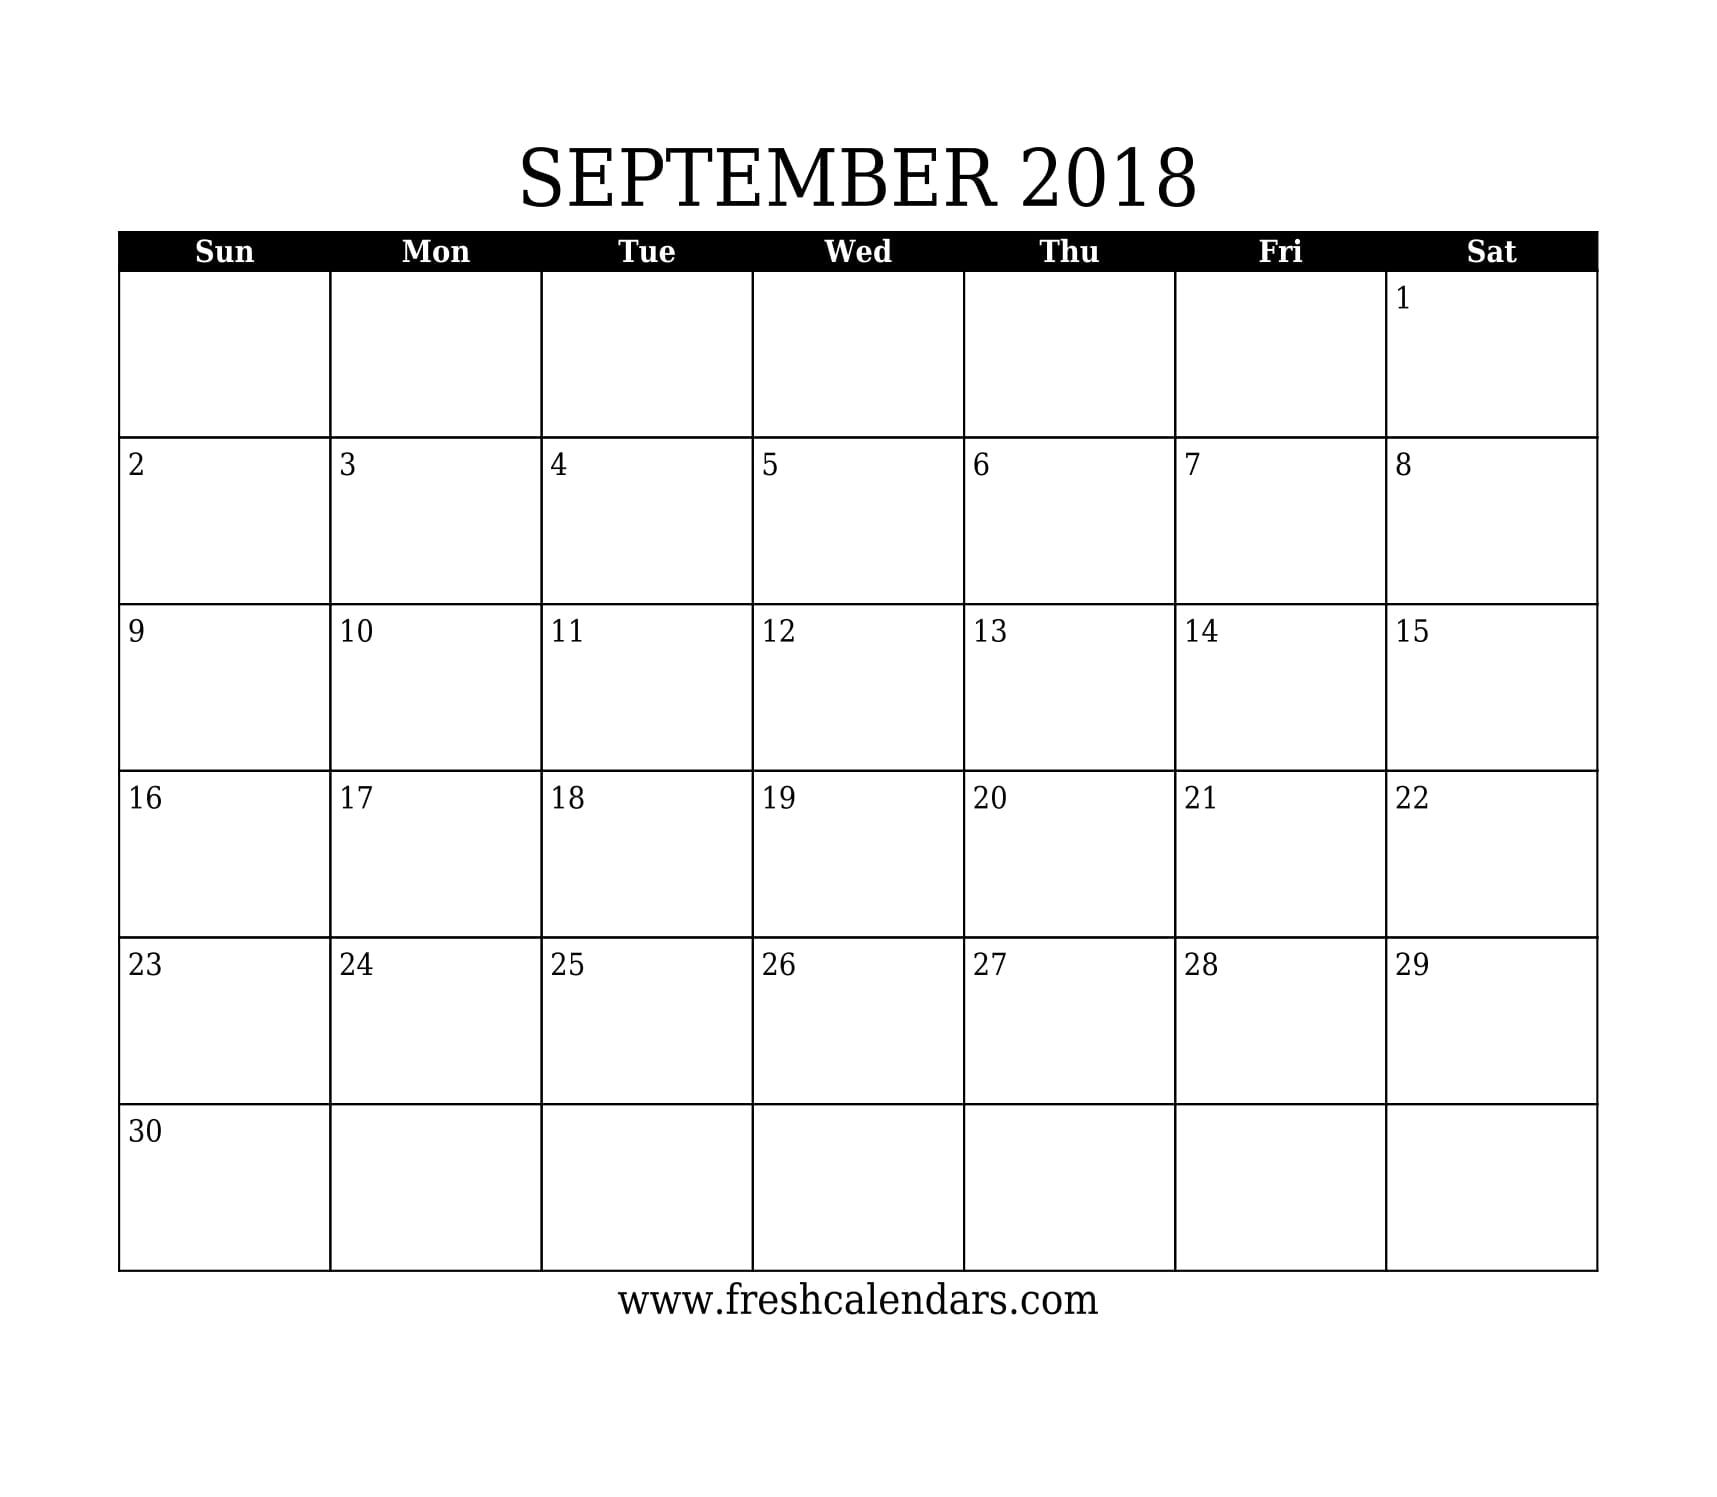 September 2018 Calendar throughout Blank September Calendar Printable